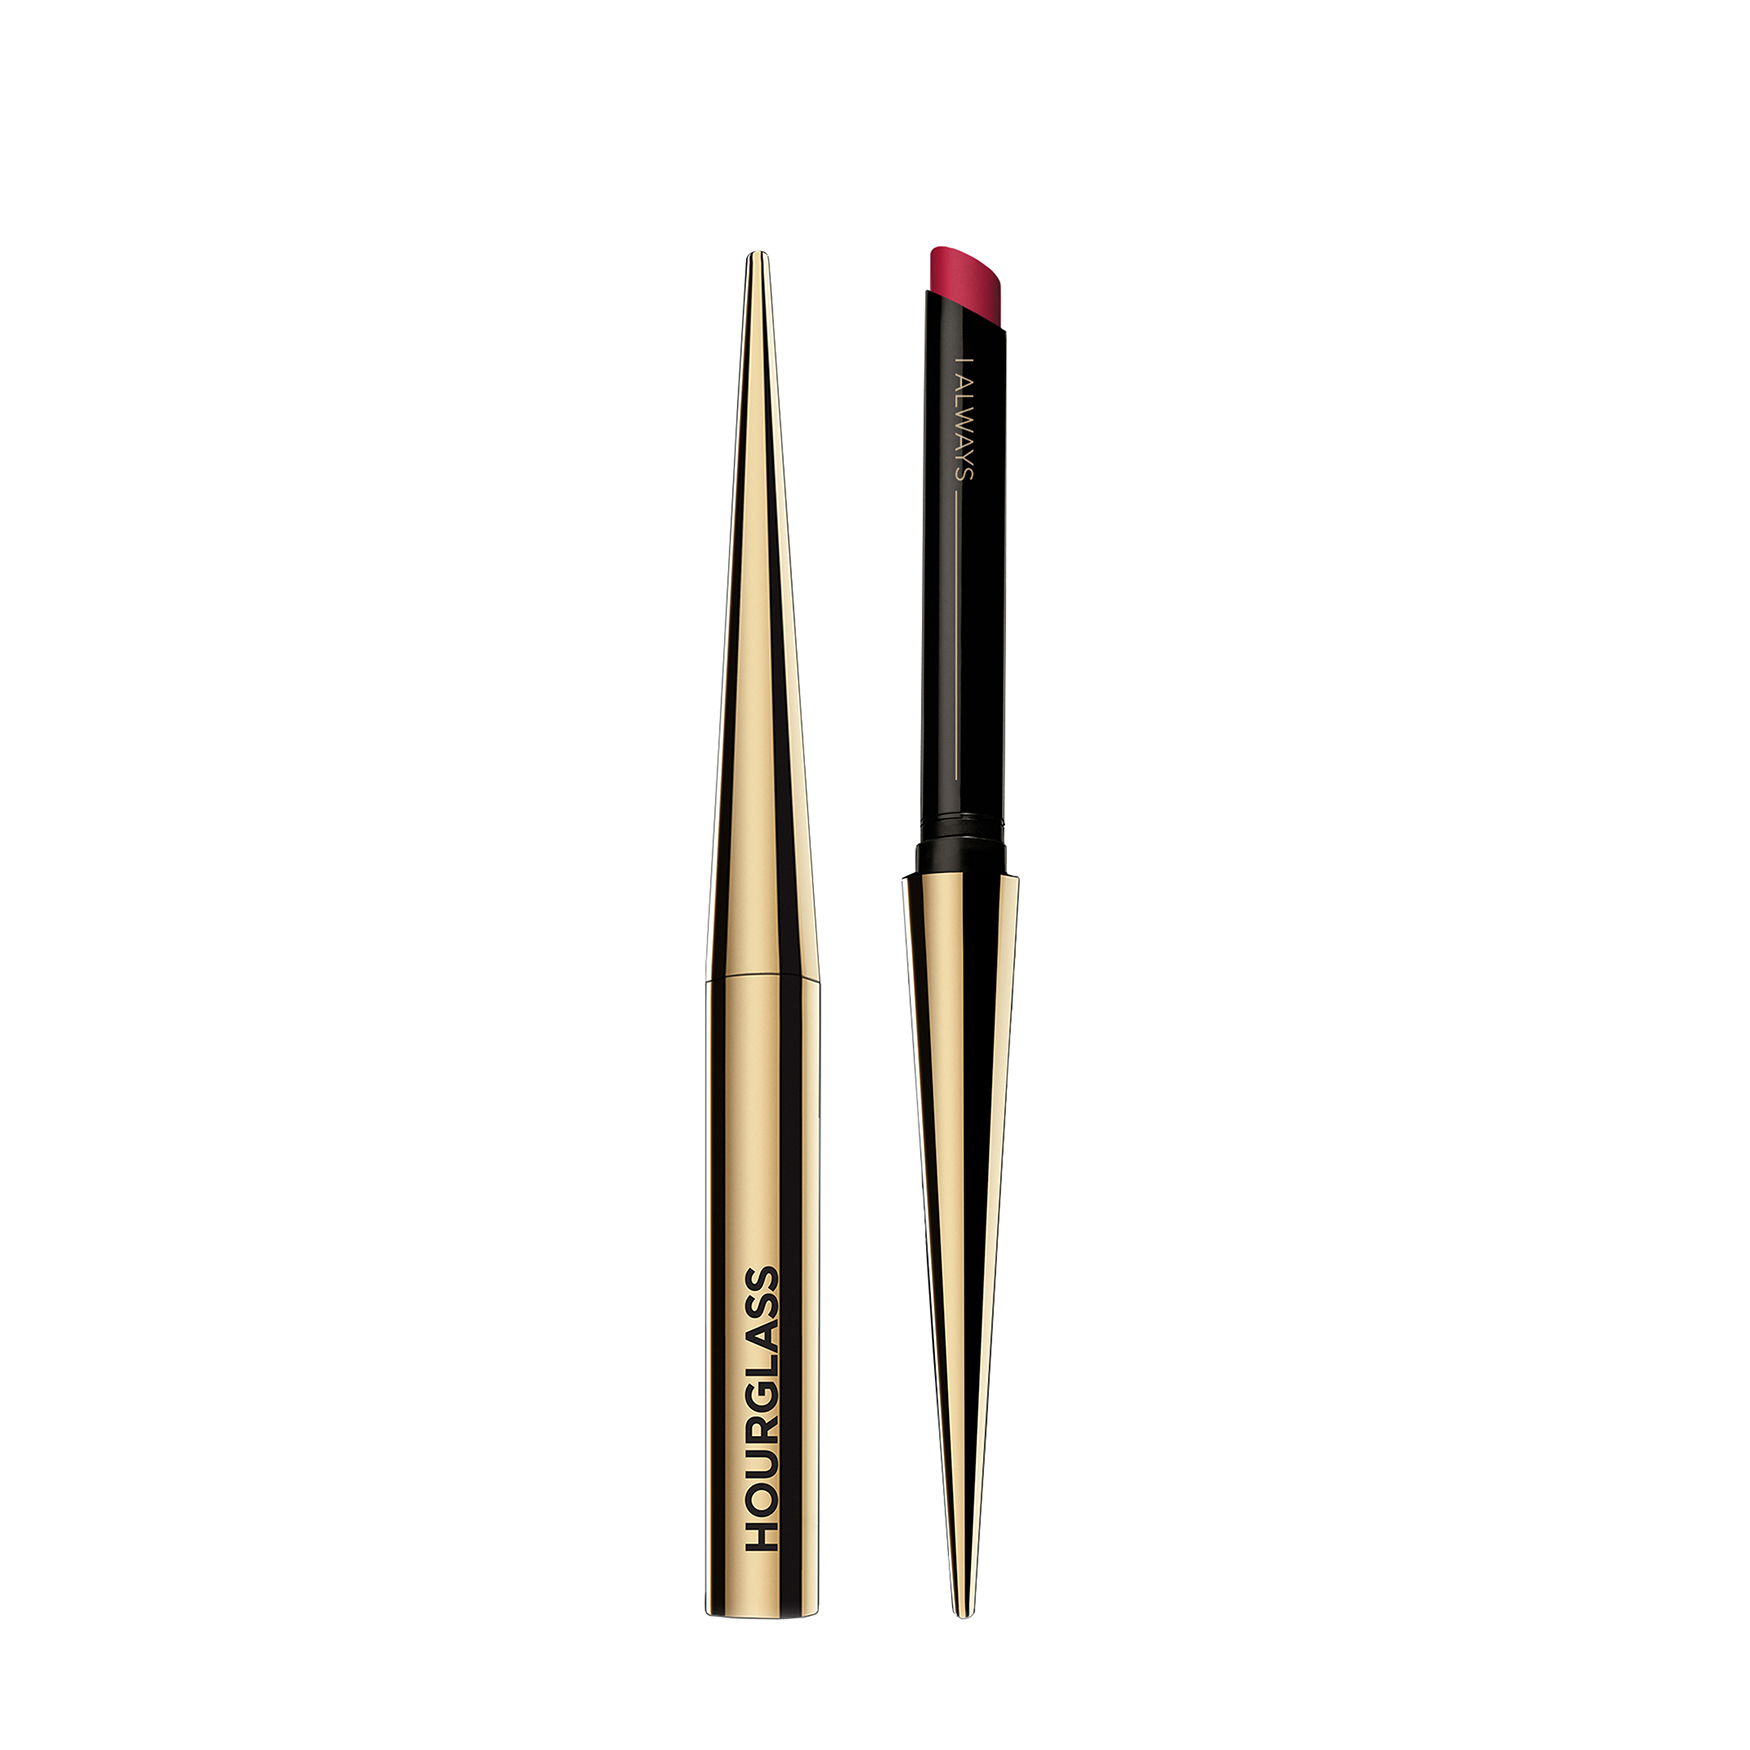 Confession Ultra Slim High Intensity Refillable Lipstick, I ALWAYS, large